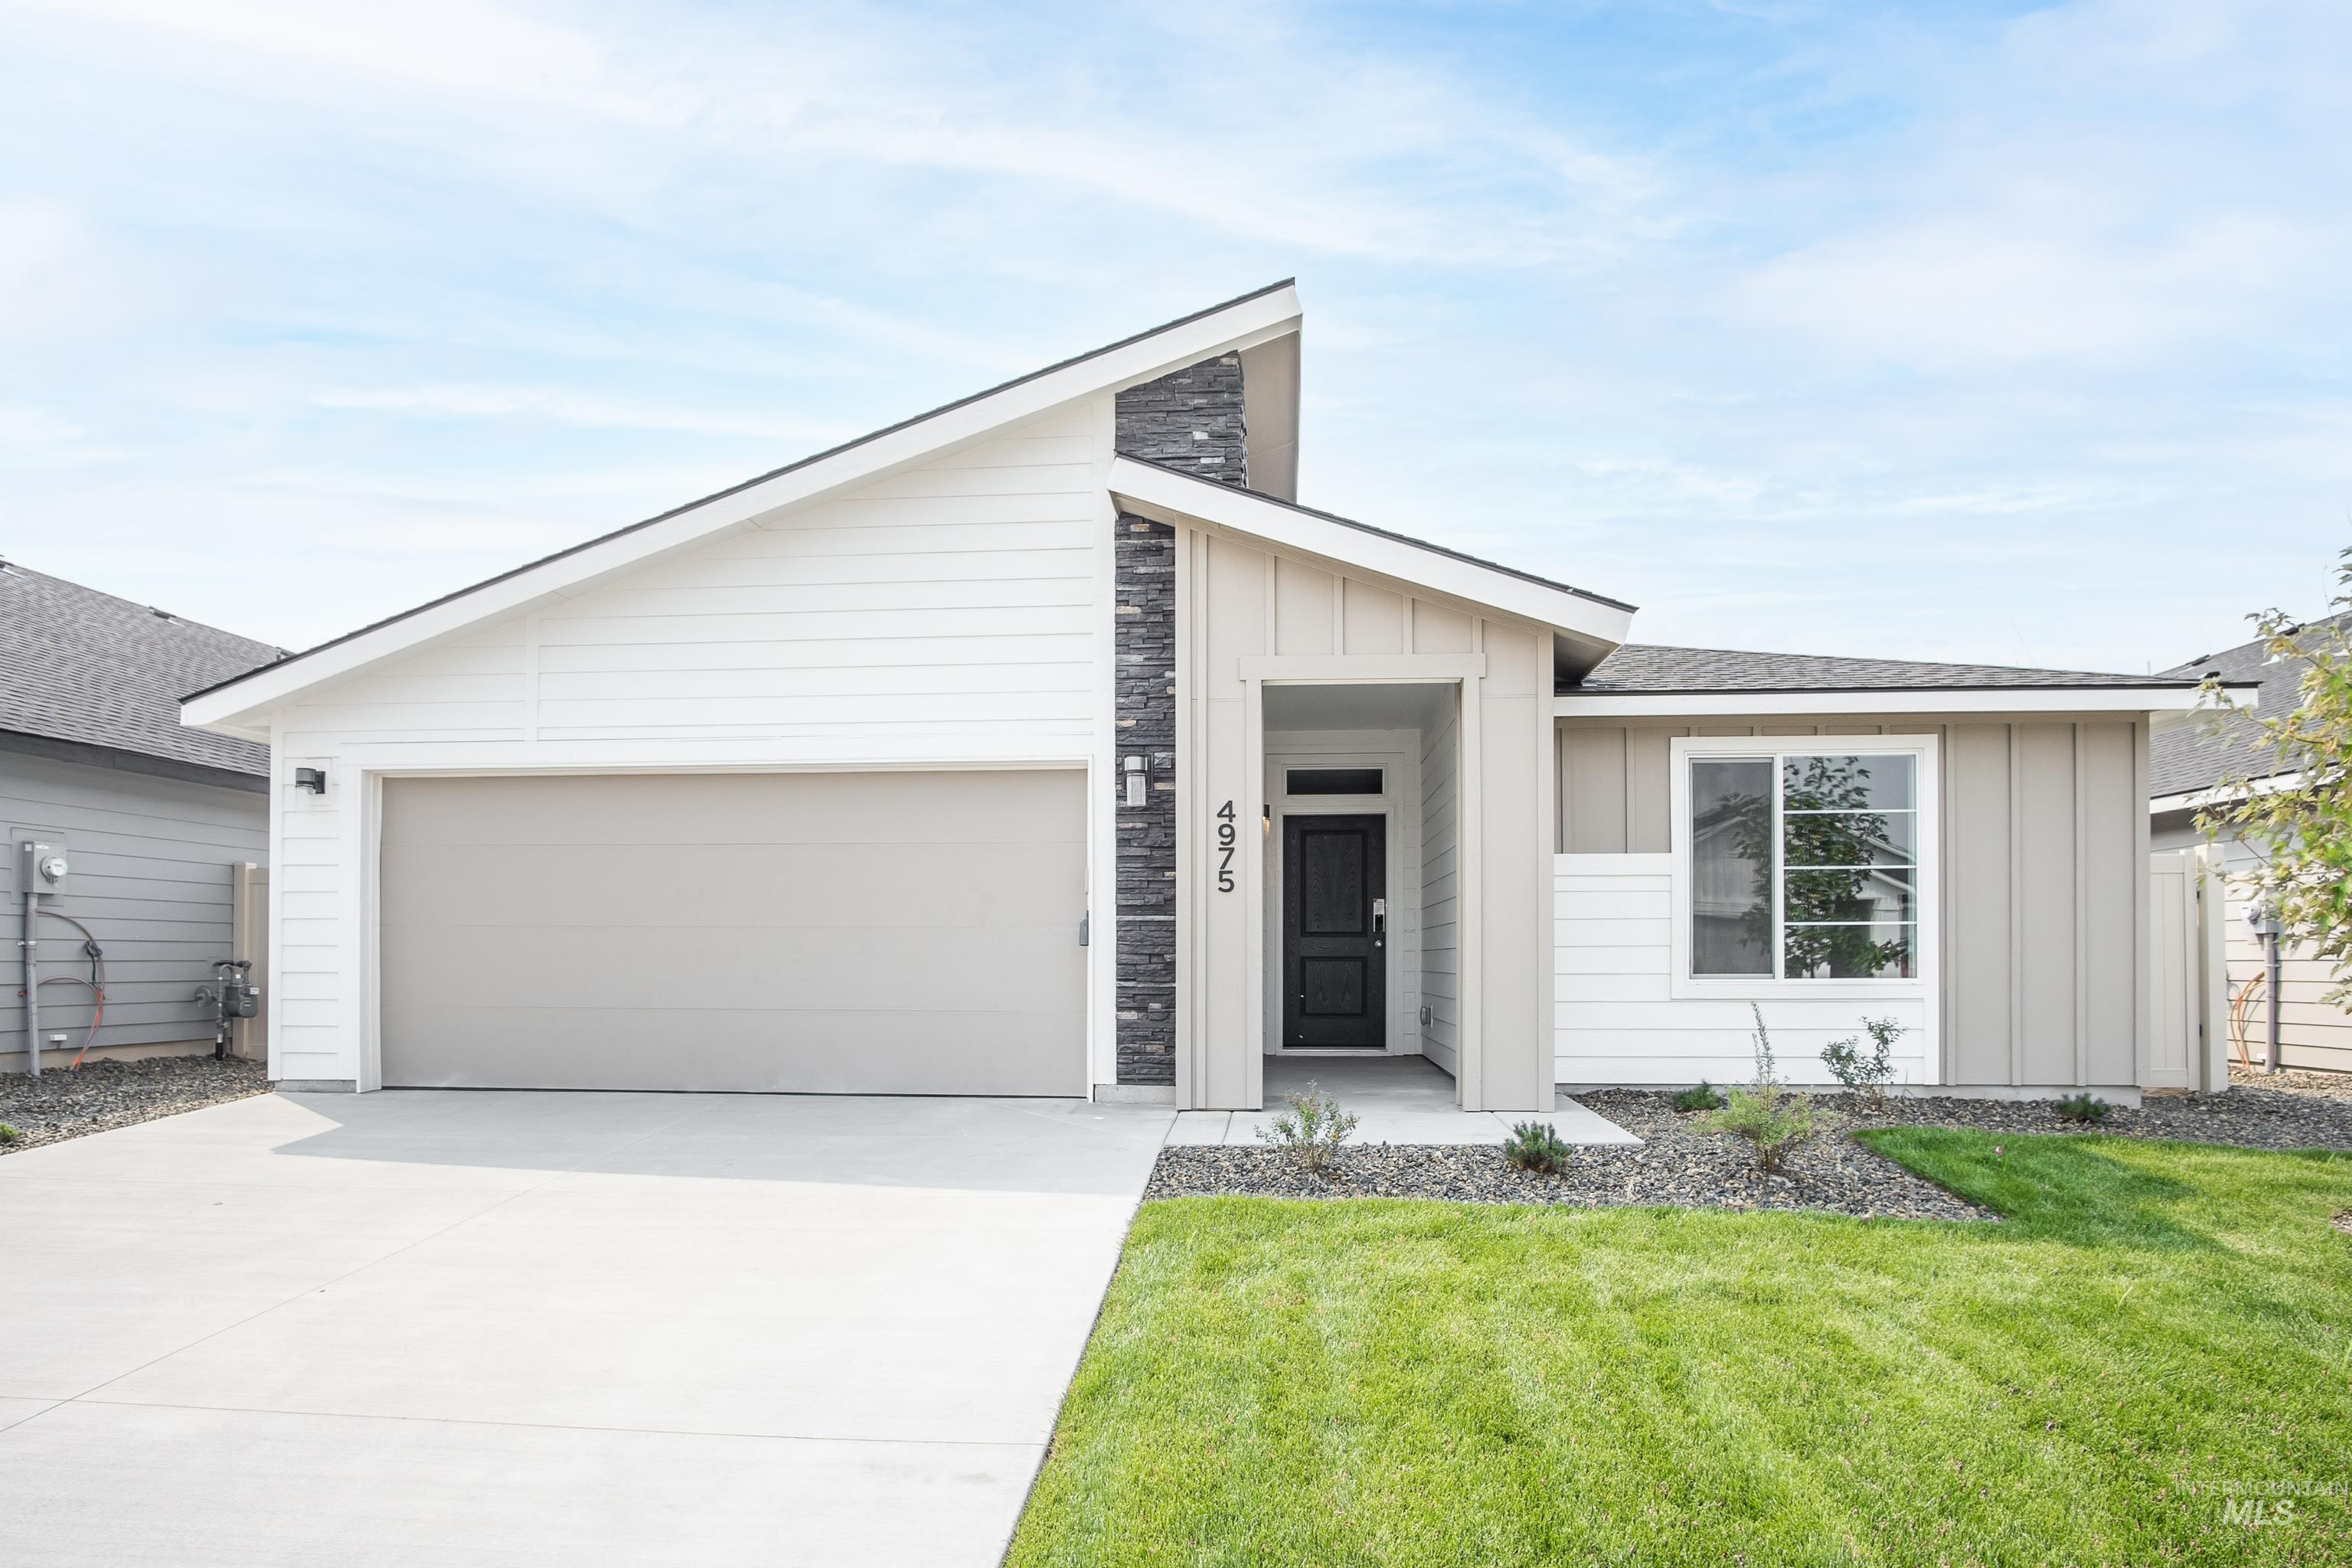 Get $15k with our CASH BOOM HOME PROMO NOW thru 9/30. Want to tour this home NOW? Get on-demand access with TOUR NOW.  The Willow 1860 has 4 great sized beds and 2 full baths. The open kitchen flows seamlessly into the dining room & out to the back patio where you can sit back and relax. Price includes dual vanities, upgraded cabinets, evp flooring, rear fencing, covered patio, and many more features.  RCE-923 - Teschia Tucakovic, Voice: 208-724-4201, CBH Sales and Marketing, Main: 208-288-5560, https://www.cbhhomes.com